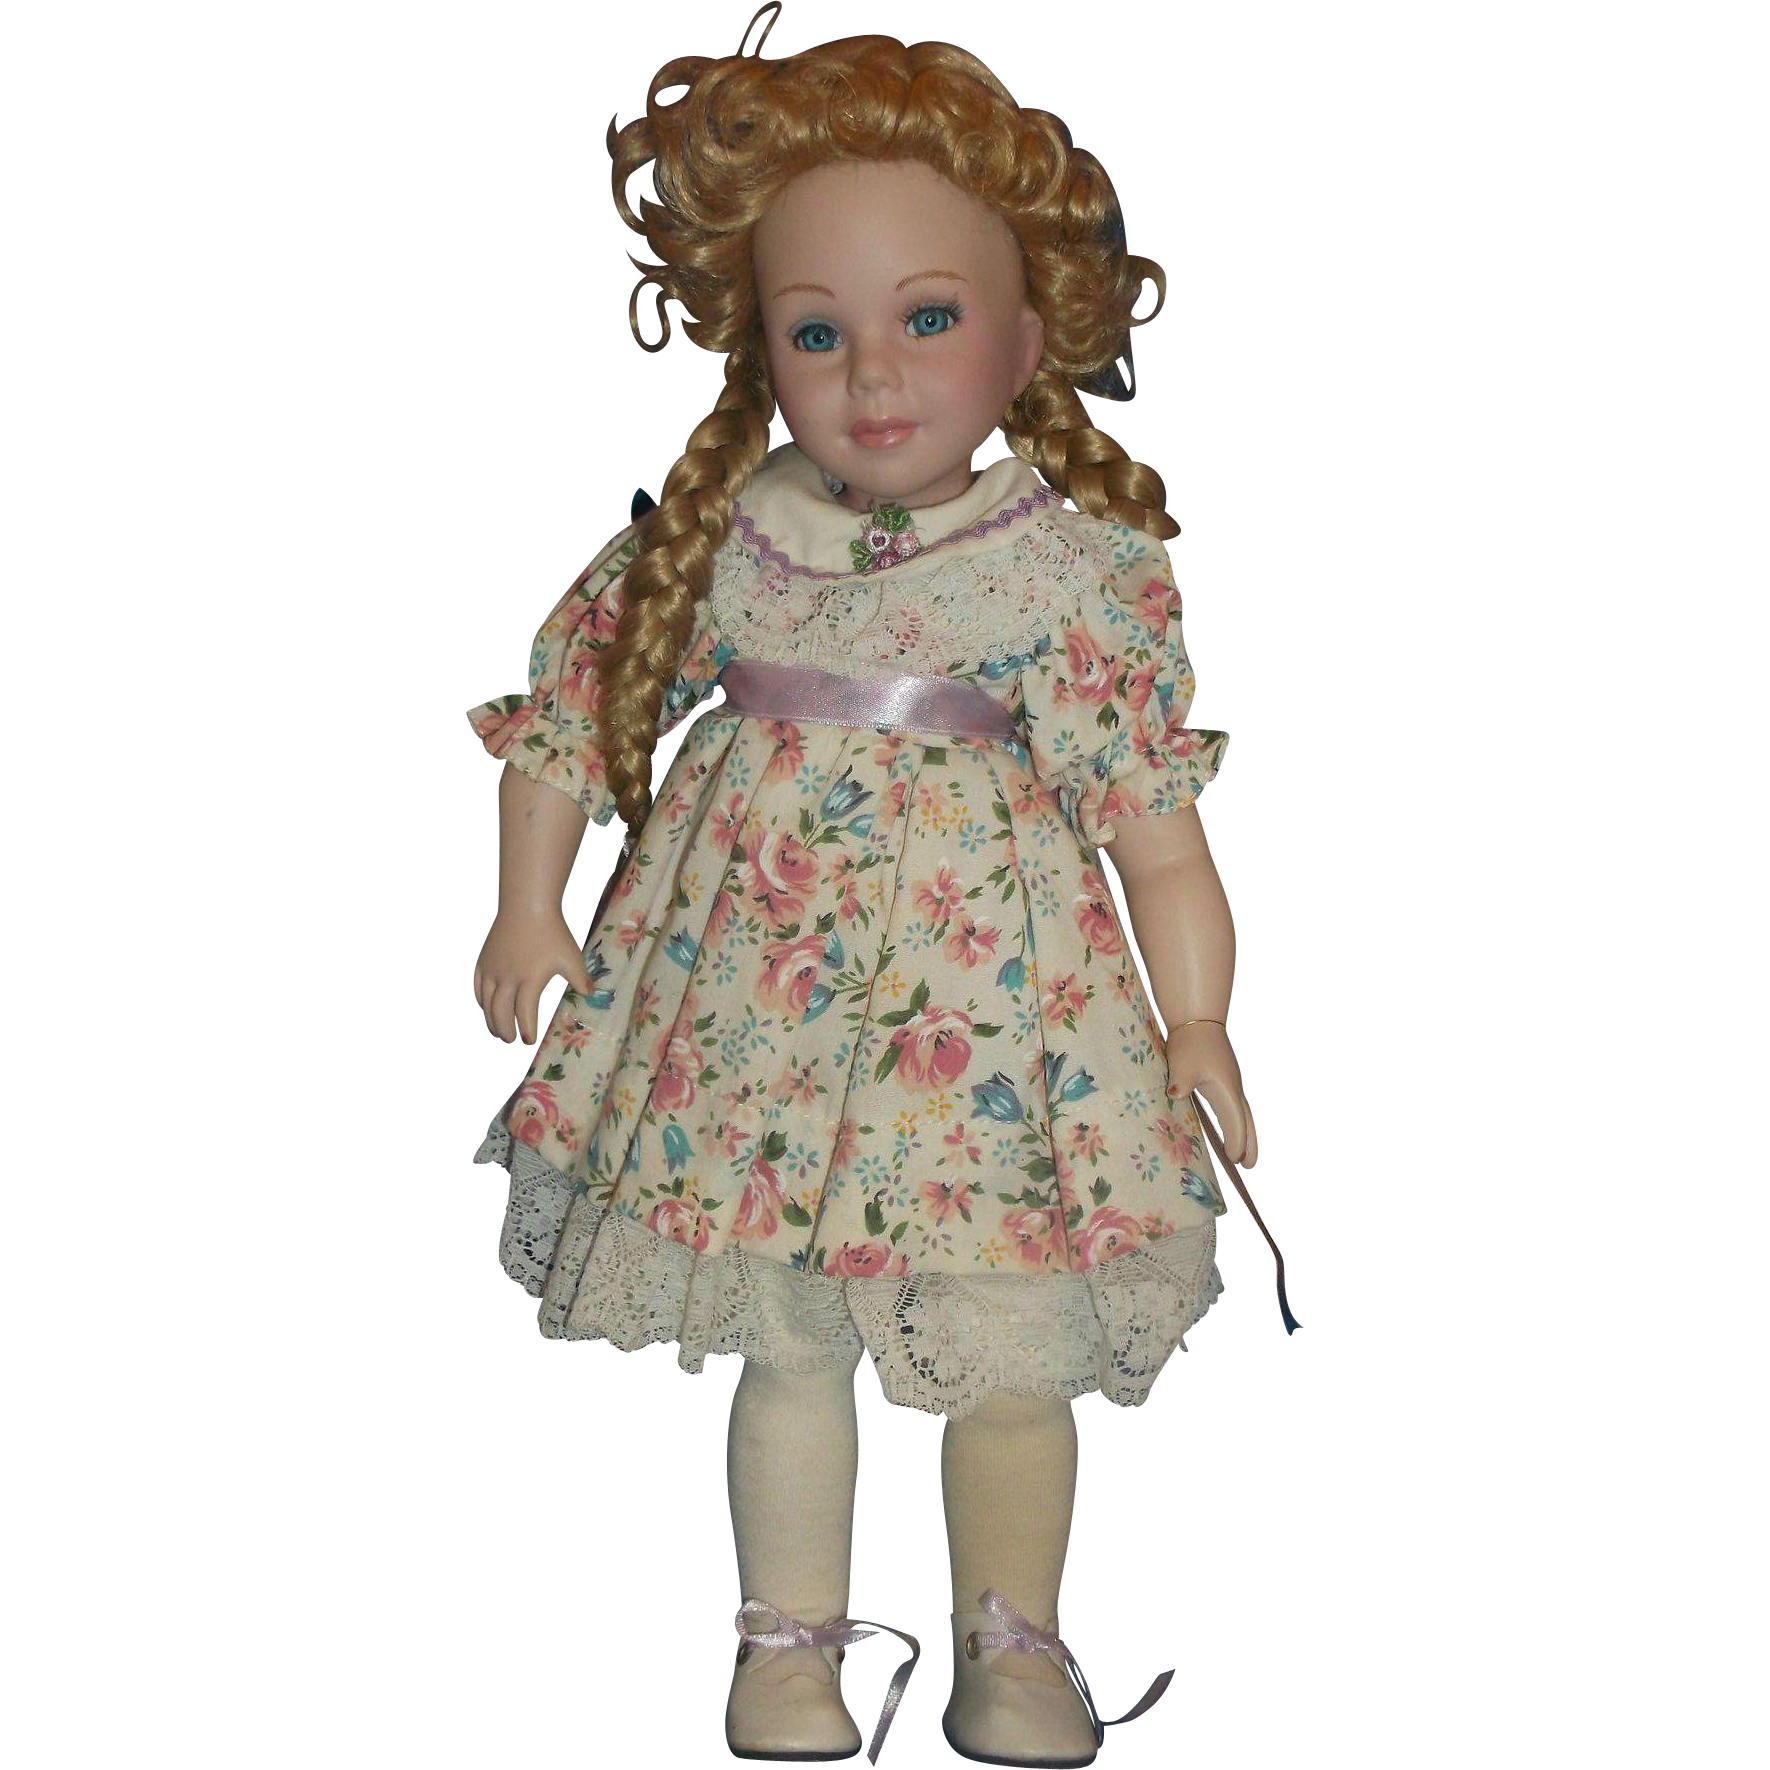 Treasures in Lace Porcelain Doll Blonde Hair Braids Curls 14 IN